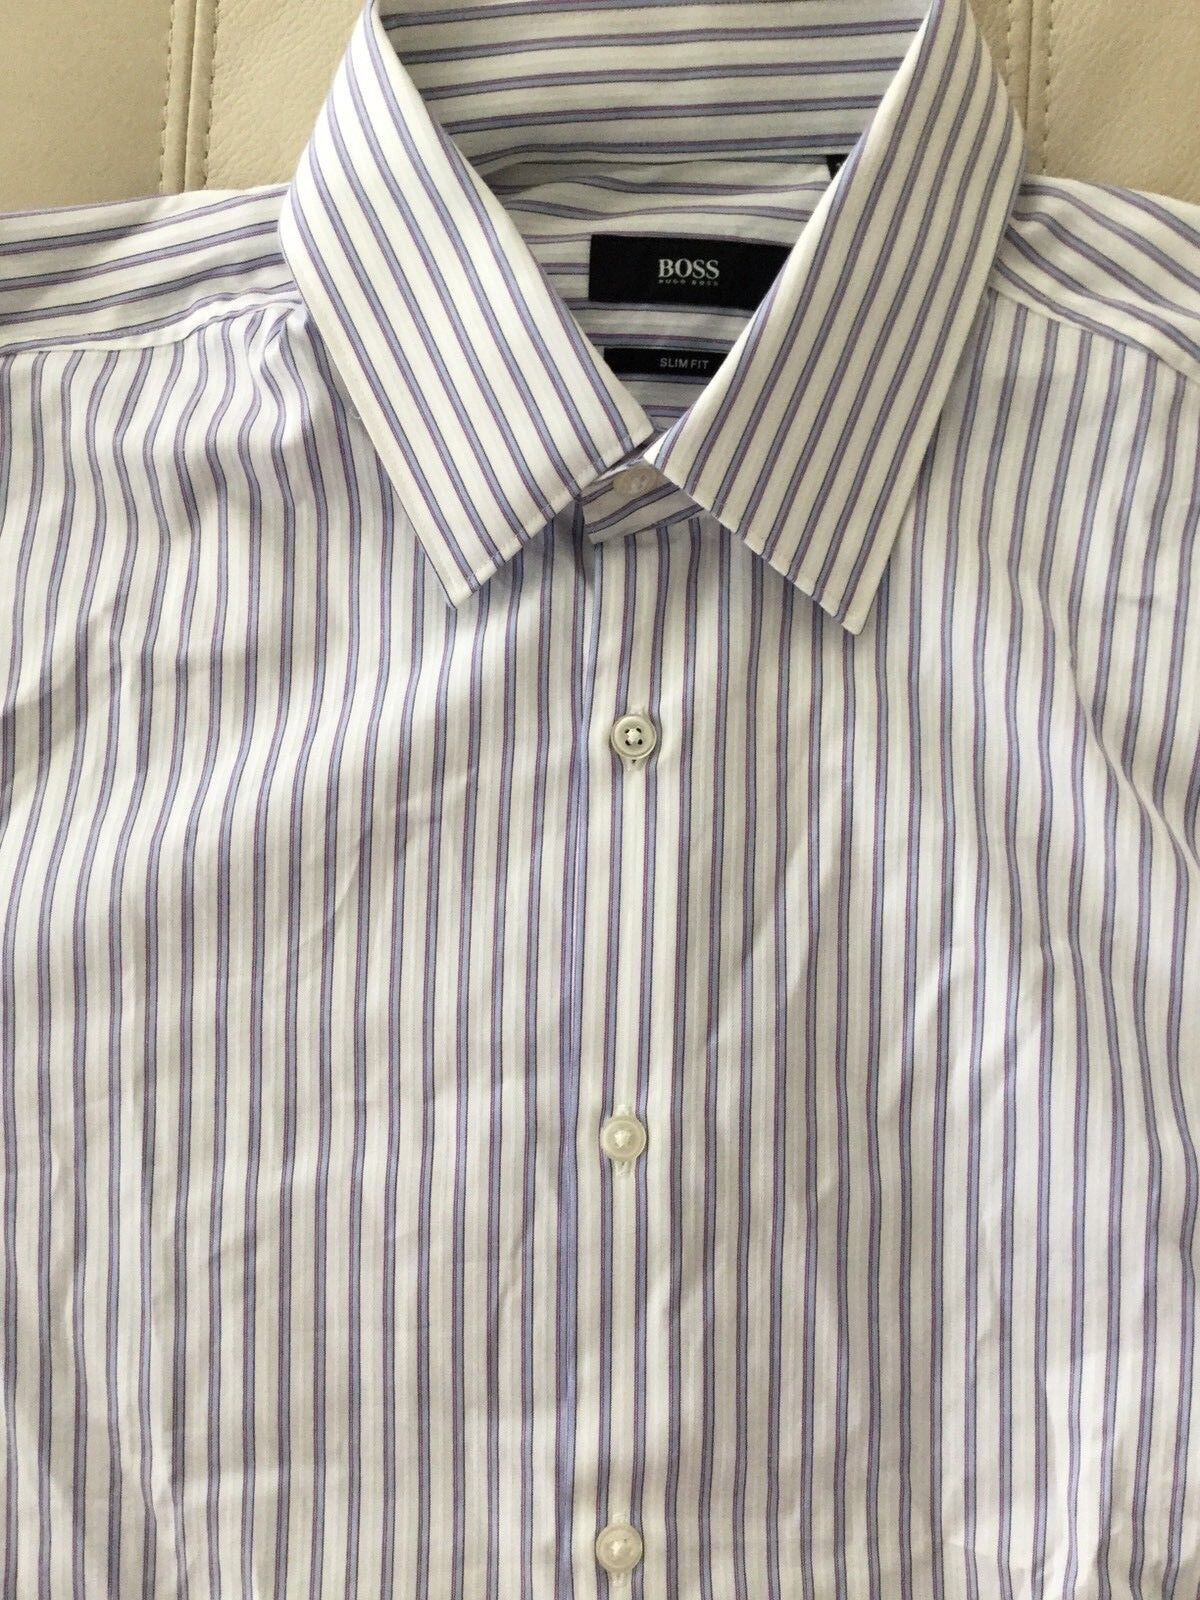 12d14291 New BOSS Hugo Boss Men's Men's Men's Slim Fit Stripe Dress Shirt size 15 1  2 R 3e1cbc